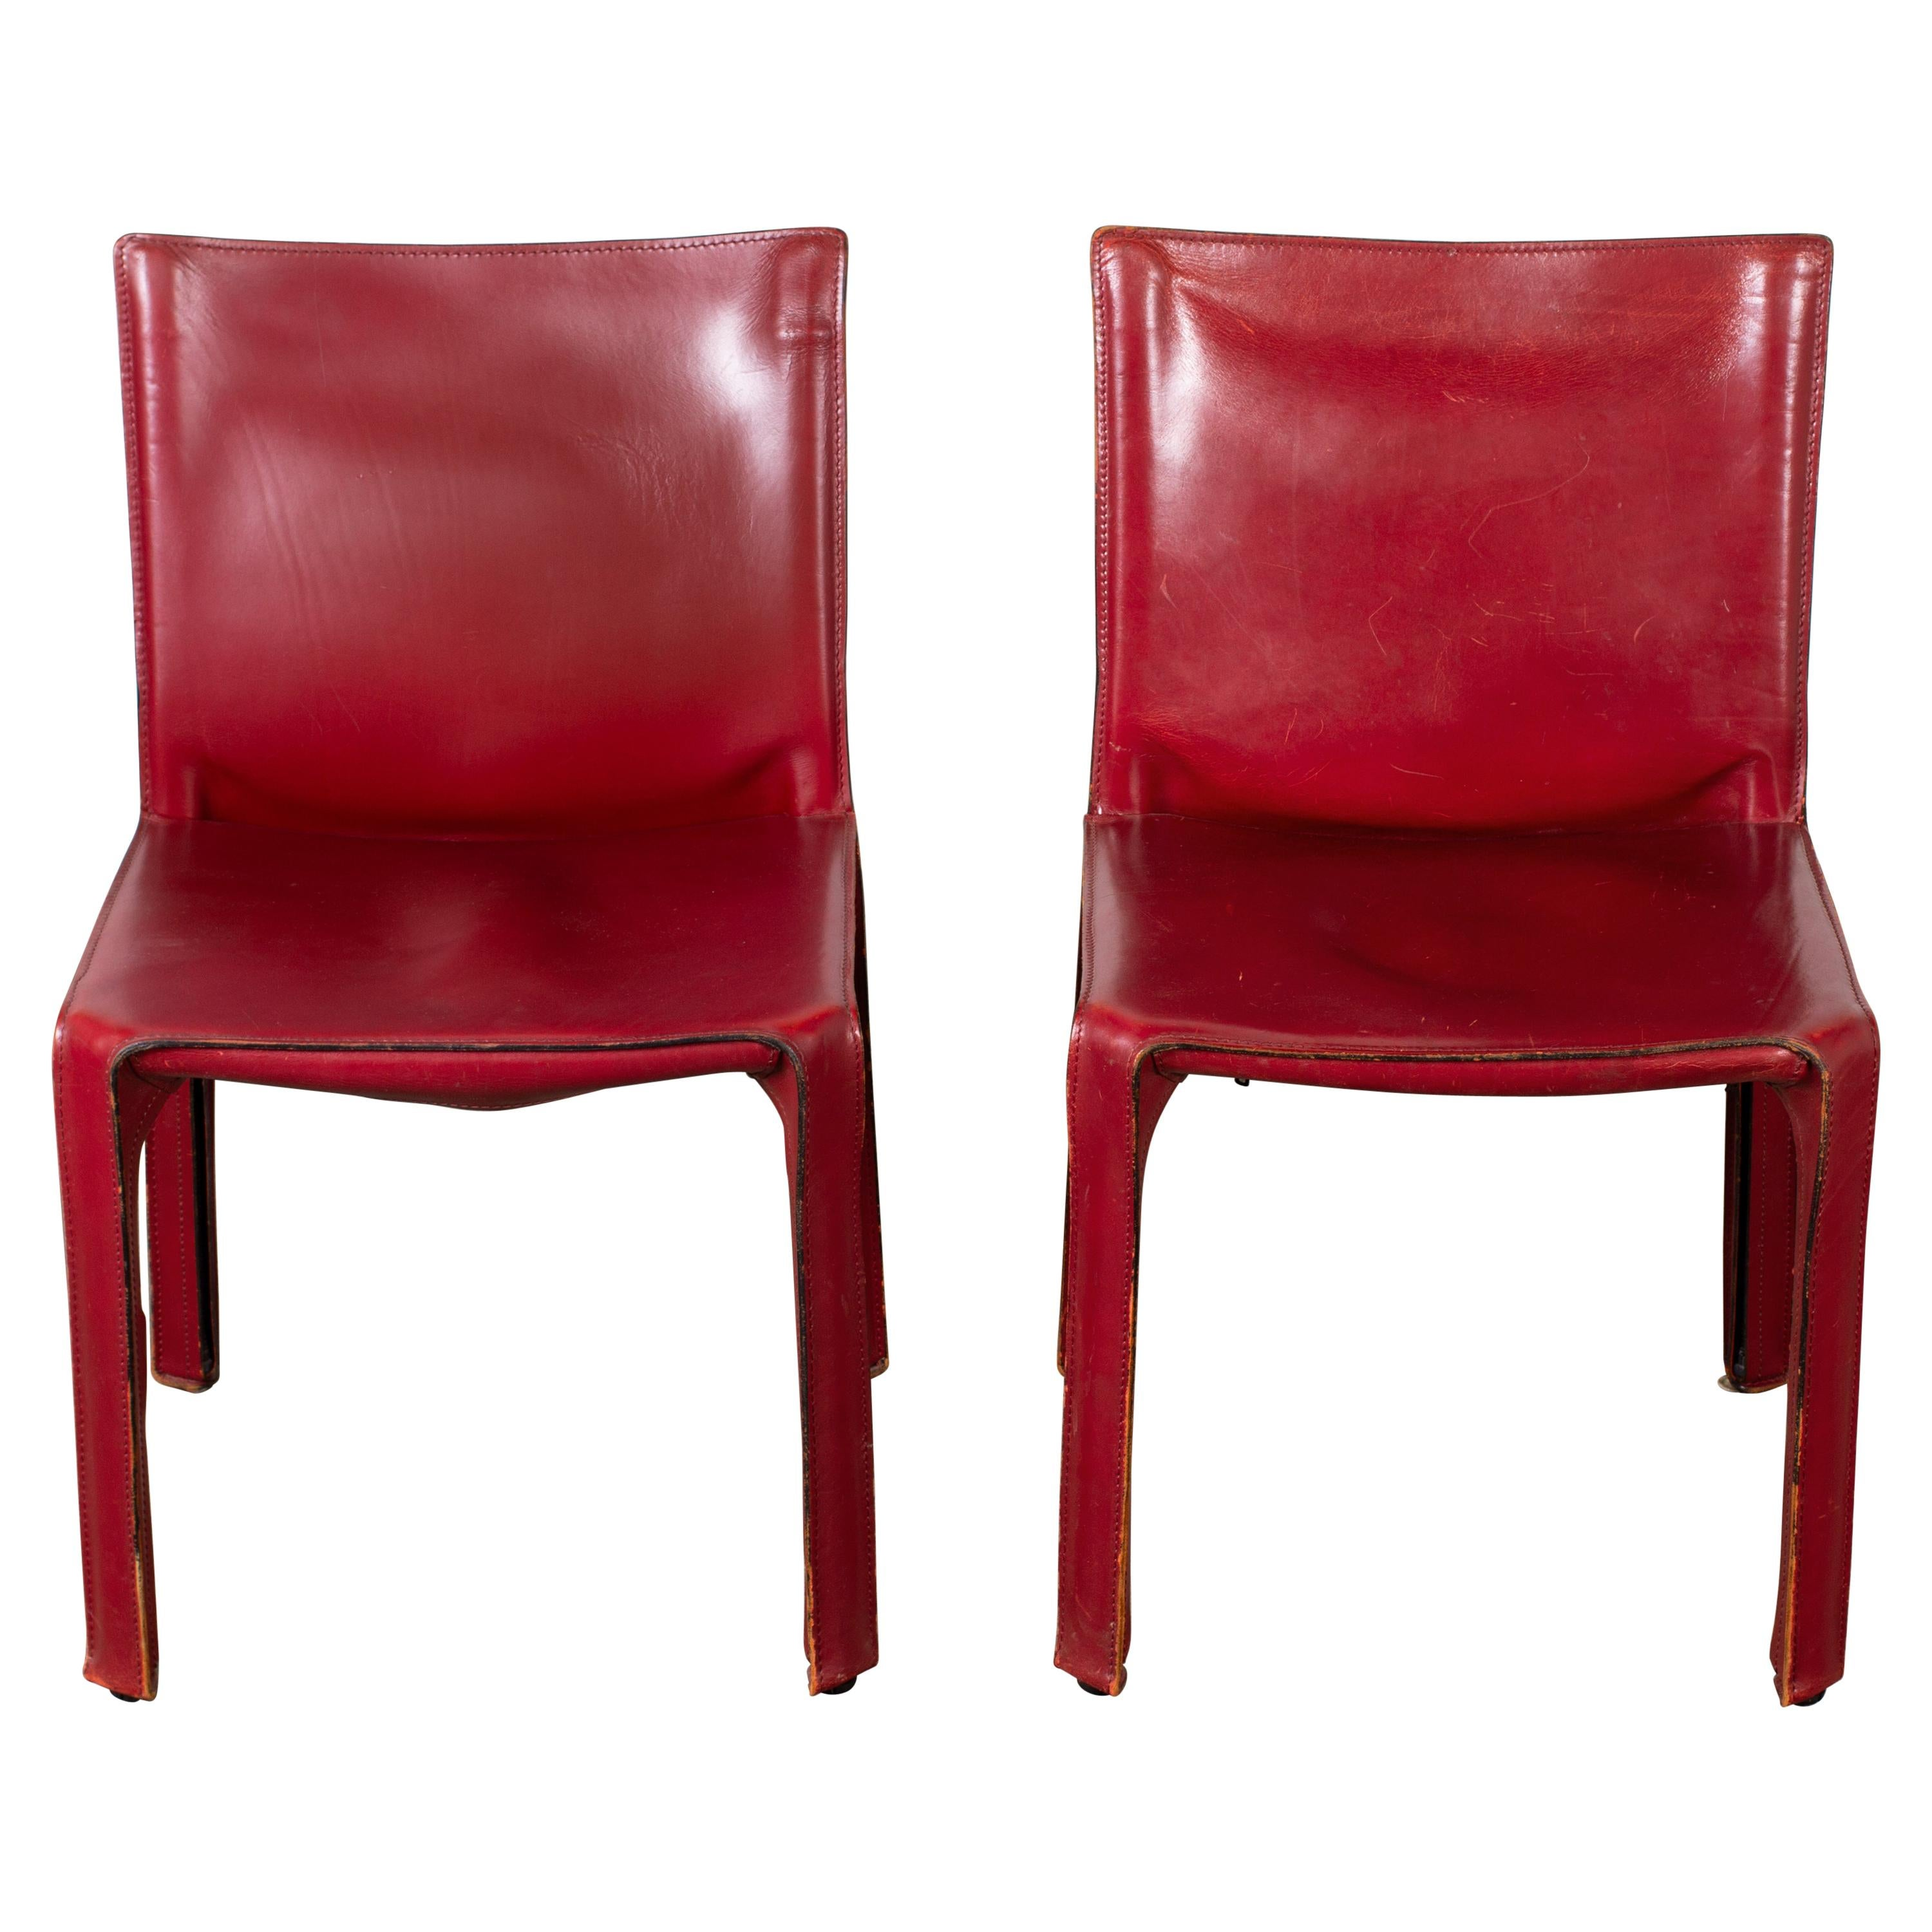 Pair of Early Mario Bellini CAB 412 Chairs in Cherry Red Leather for Cassina